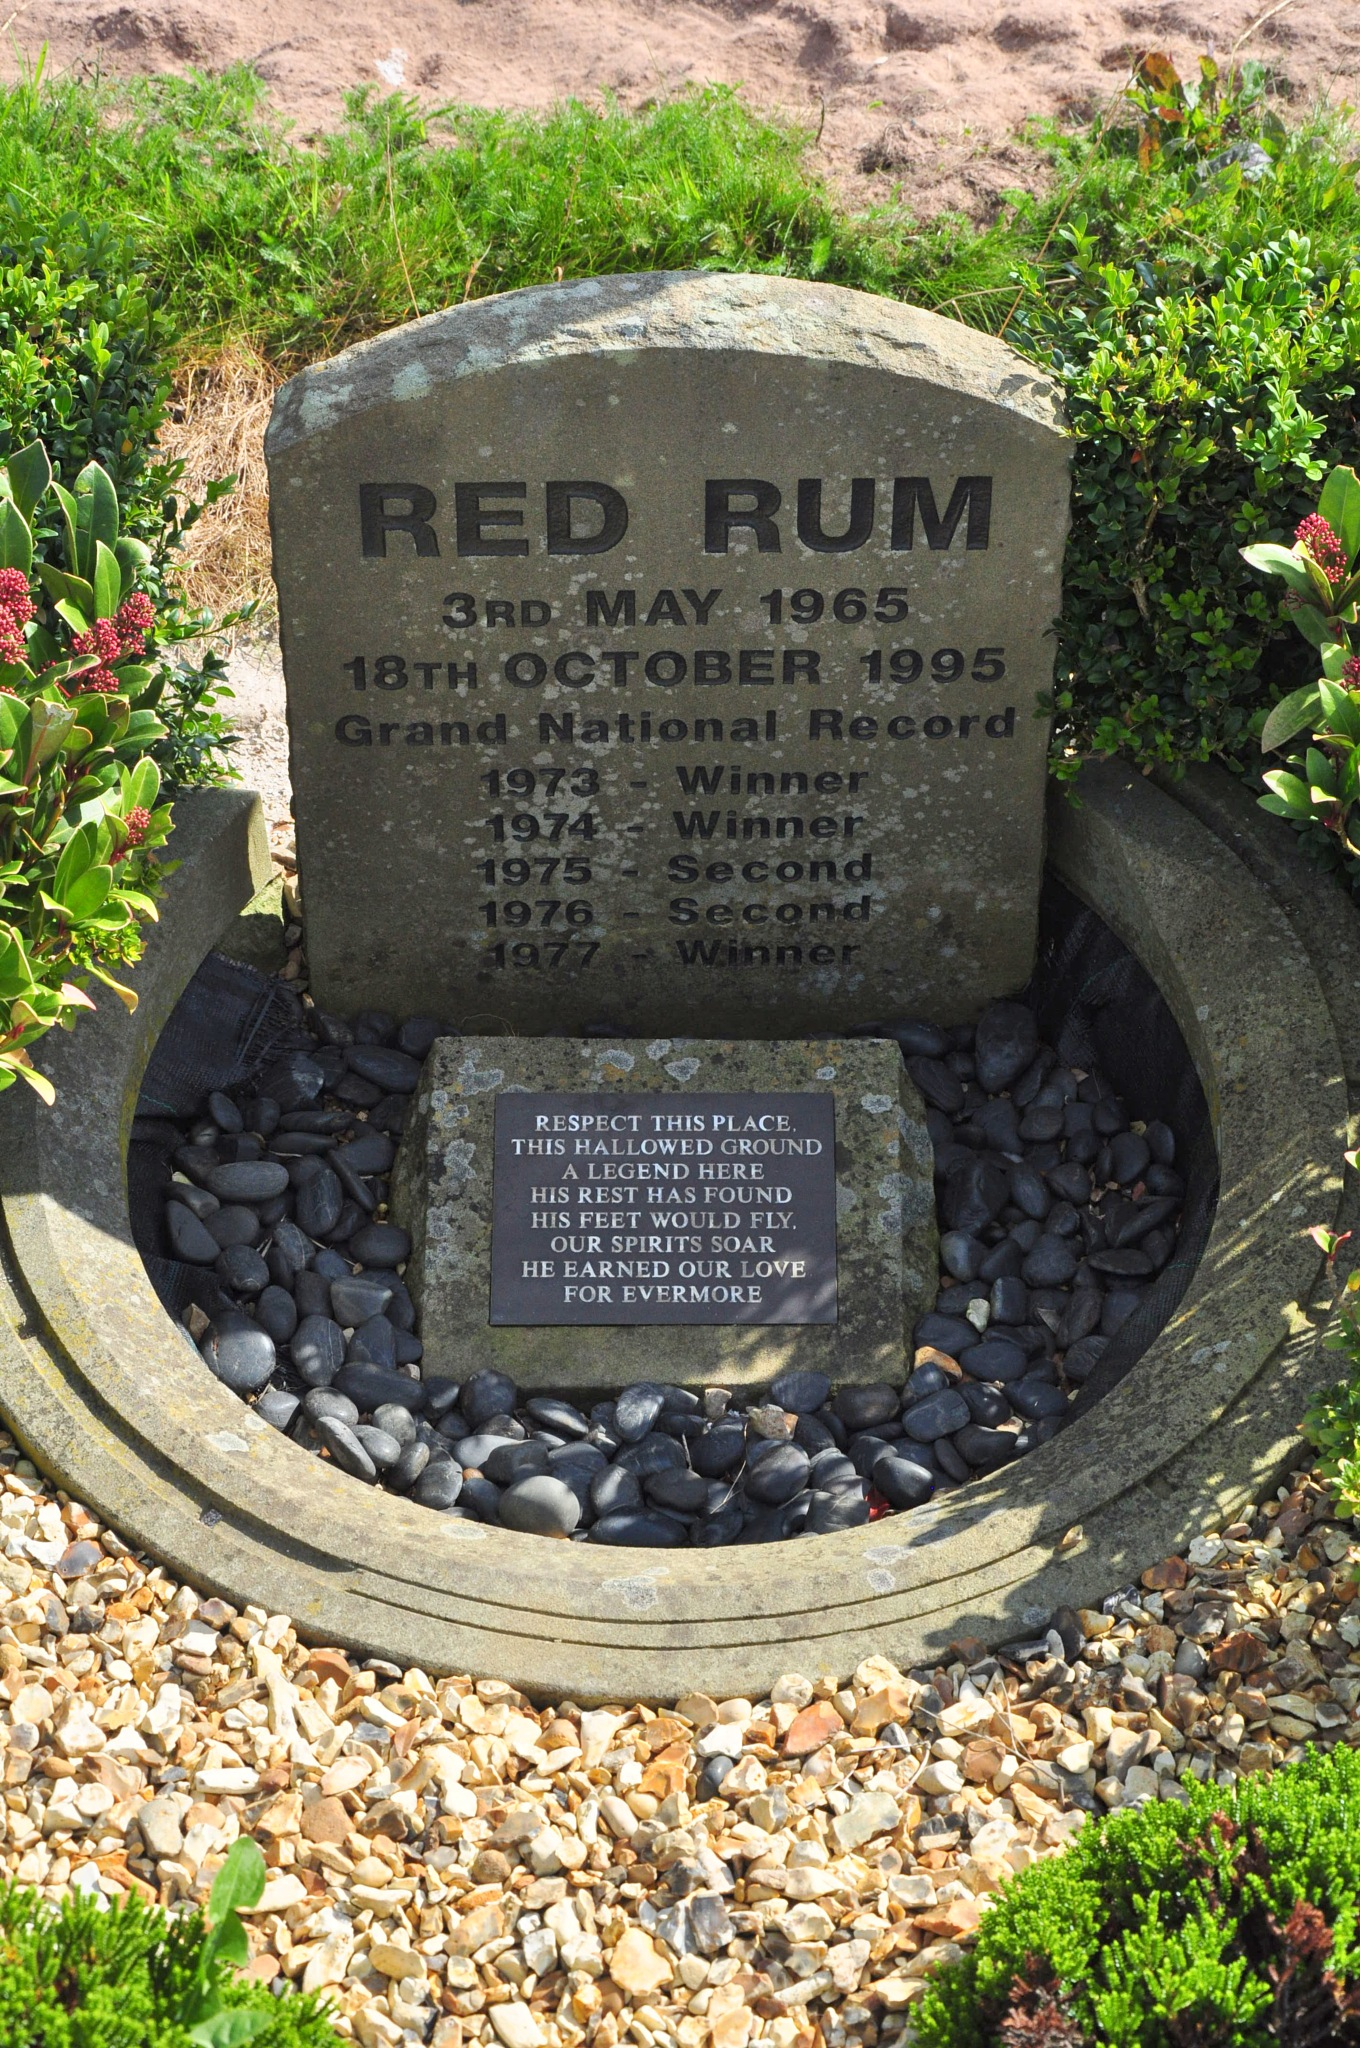 RED RUM world famous race horse  by MacMcNamee